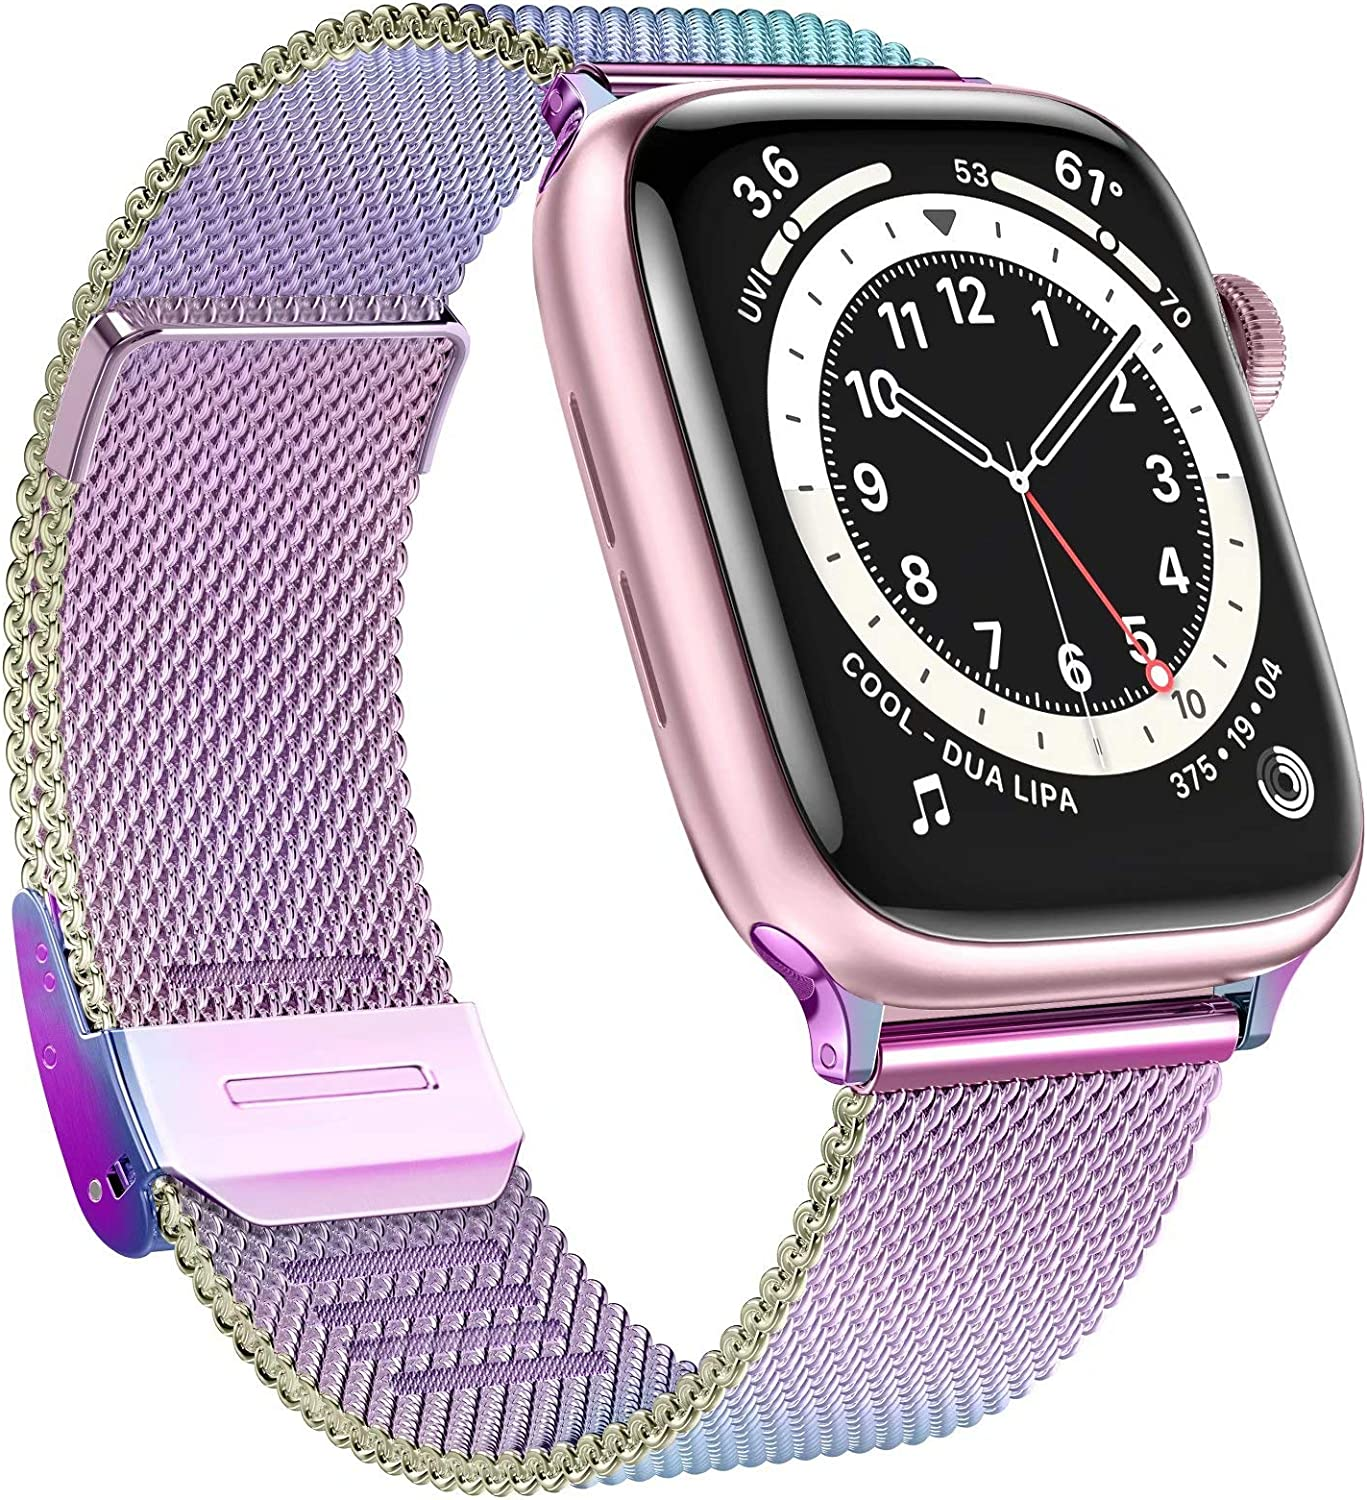 GBPOOT Bands Compatible with Apple Watch Bands 38mm 40mm 42mm 44mm,Clasp Stainless Steel Milanese Bands for iwatch Series 6/5/4/3/2/1/SE Men Women(Multicolour,38/40mm)